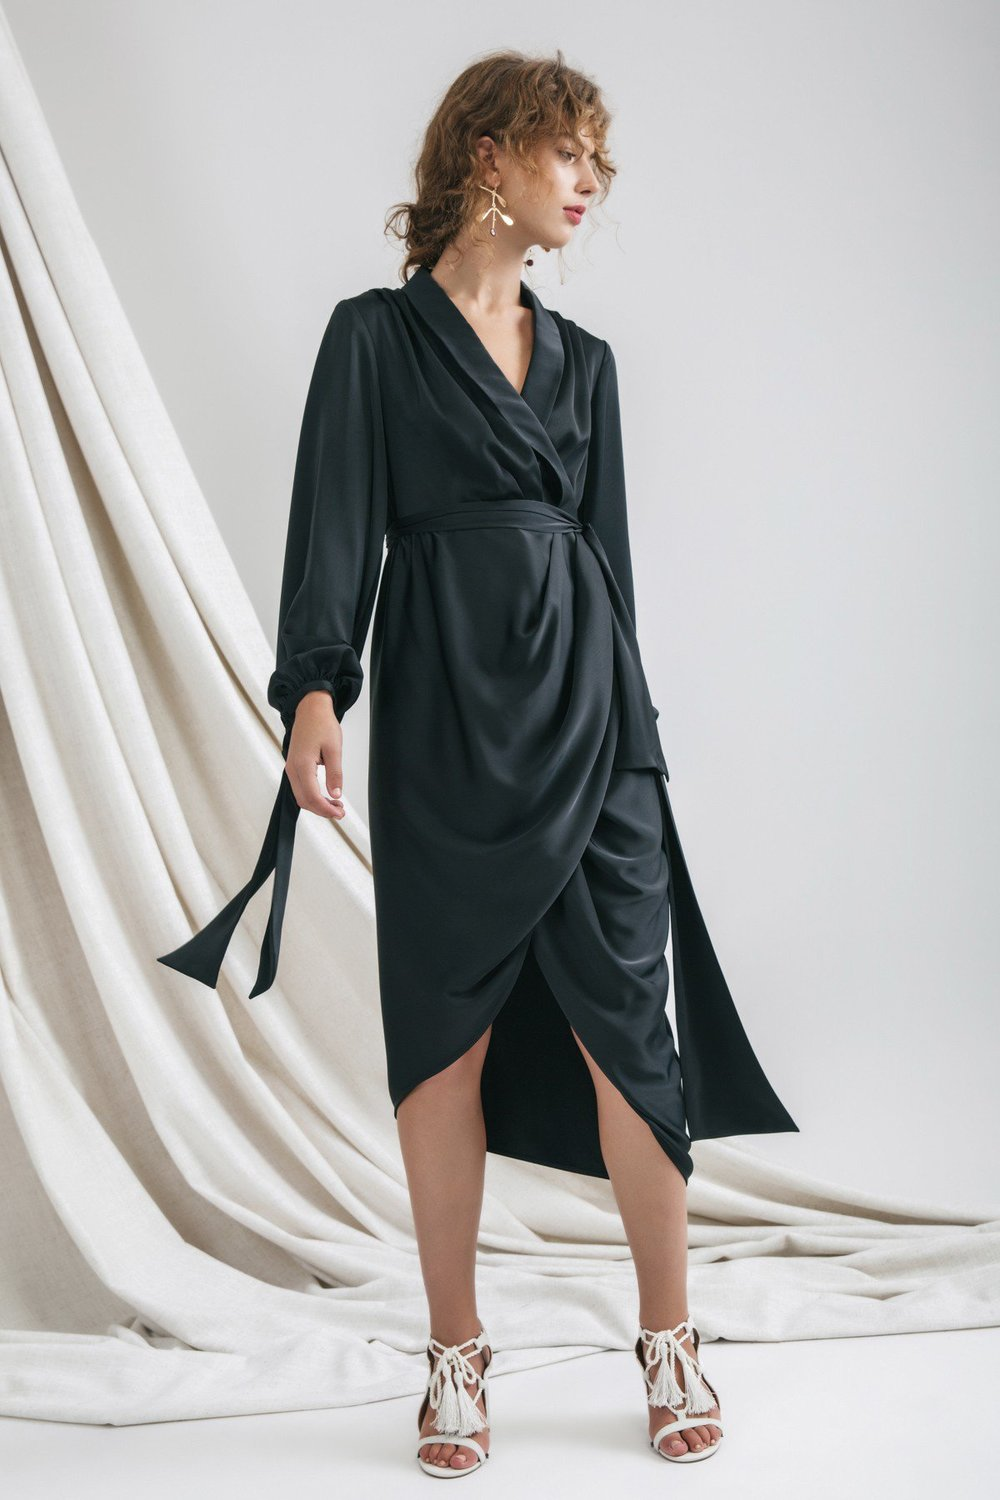 C/MEO Collective Influential L/S Dress